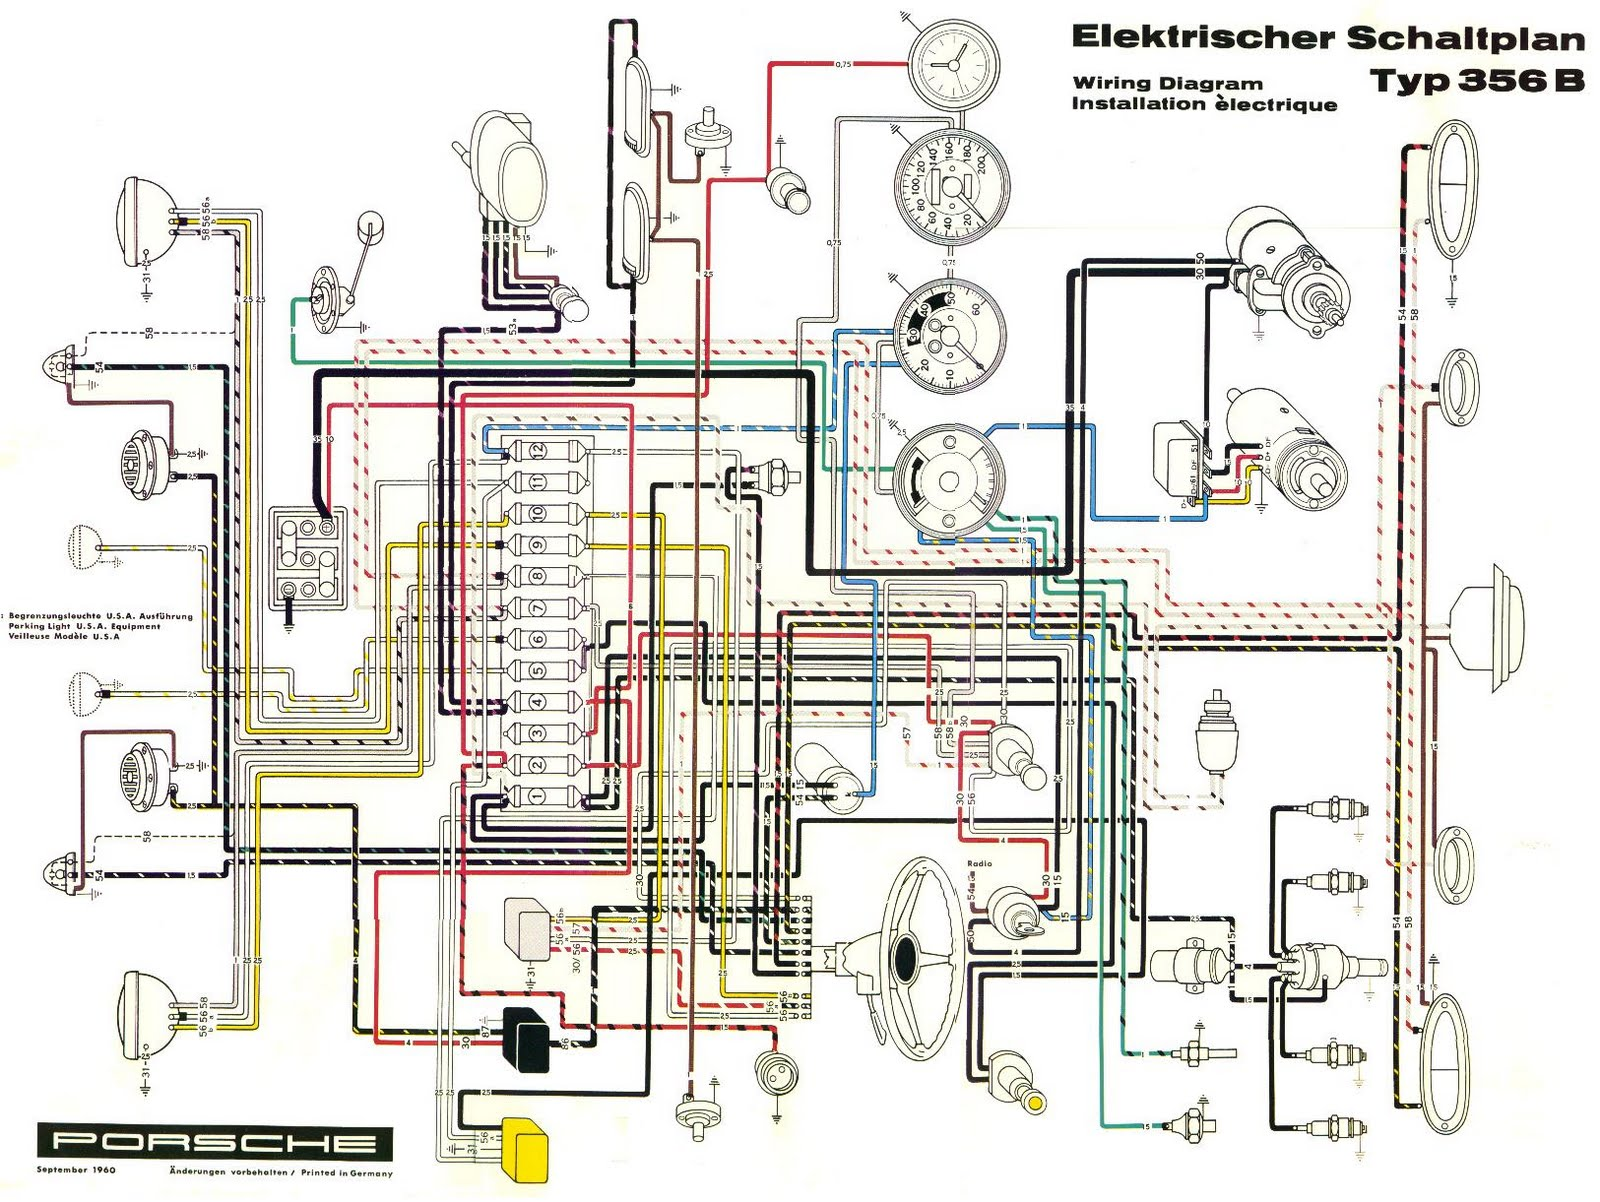 Kysor Wiring Diagram Heater. Kysor. Discover Your Wiring Diagram ...